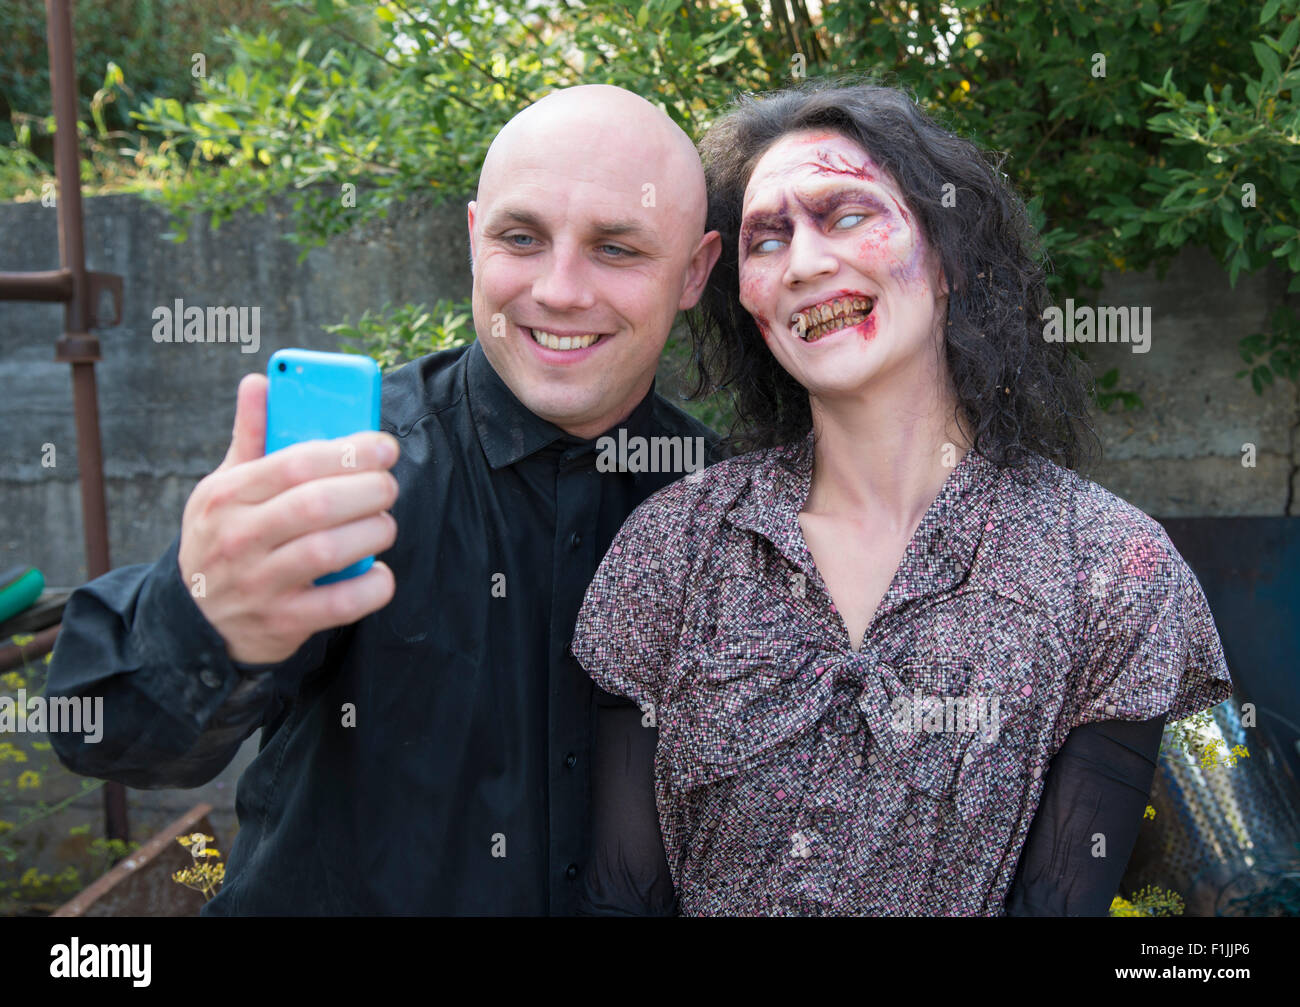 But first let me take a selfie, funny scene on the set of